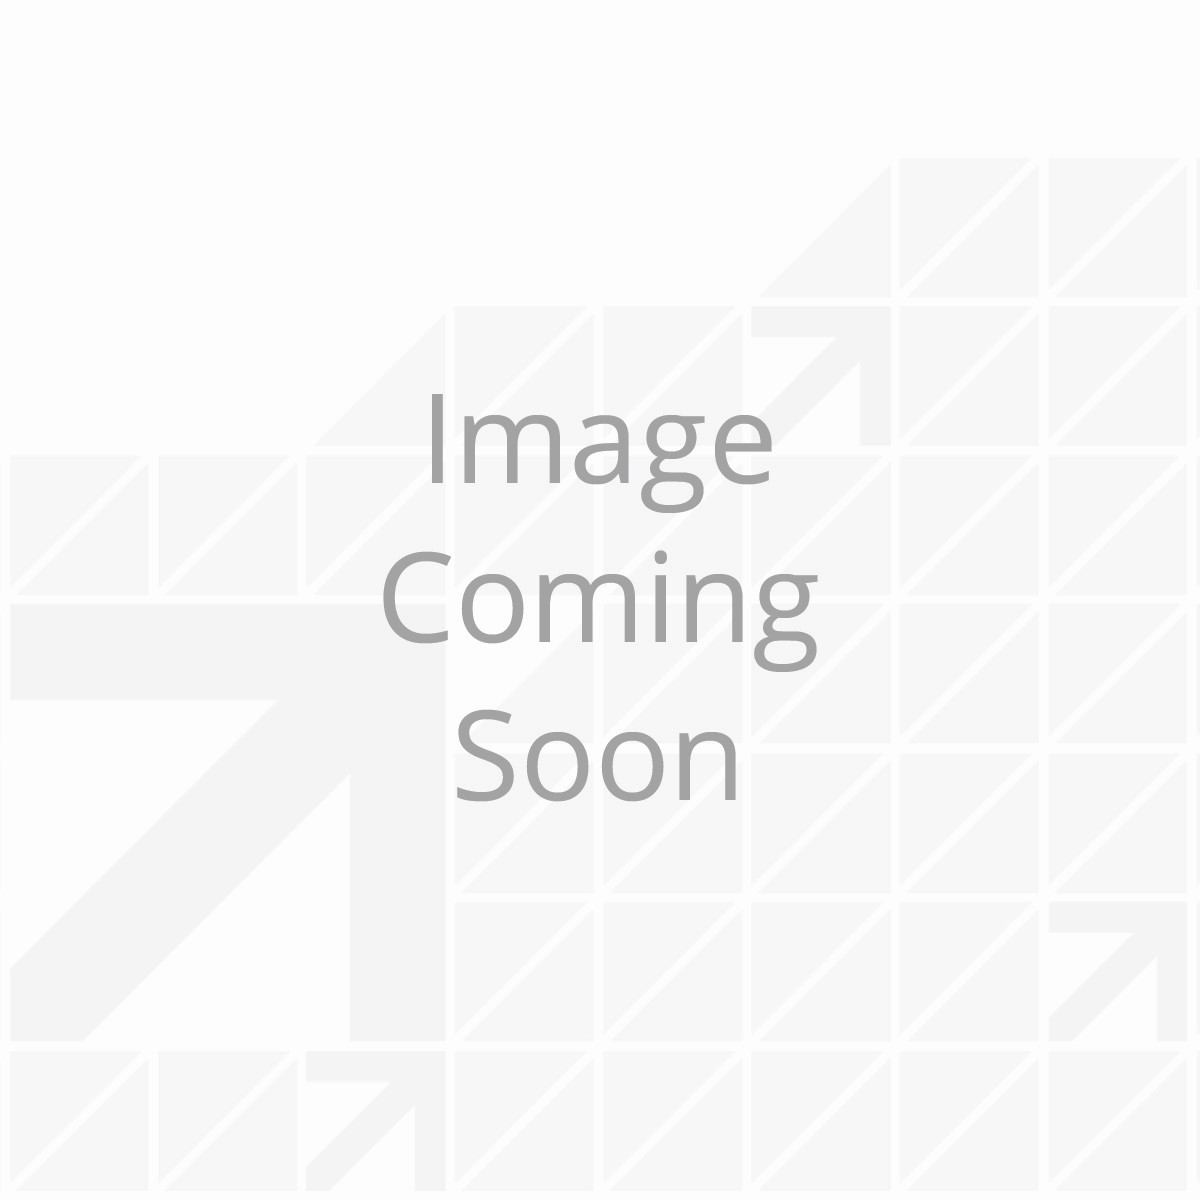 Hdmi Cable Various Sizes